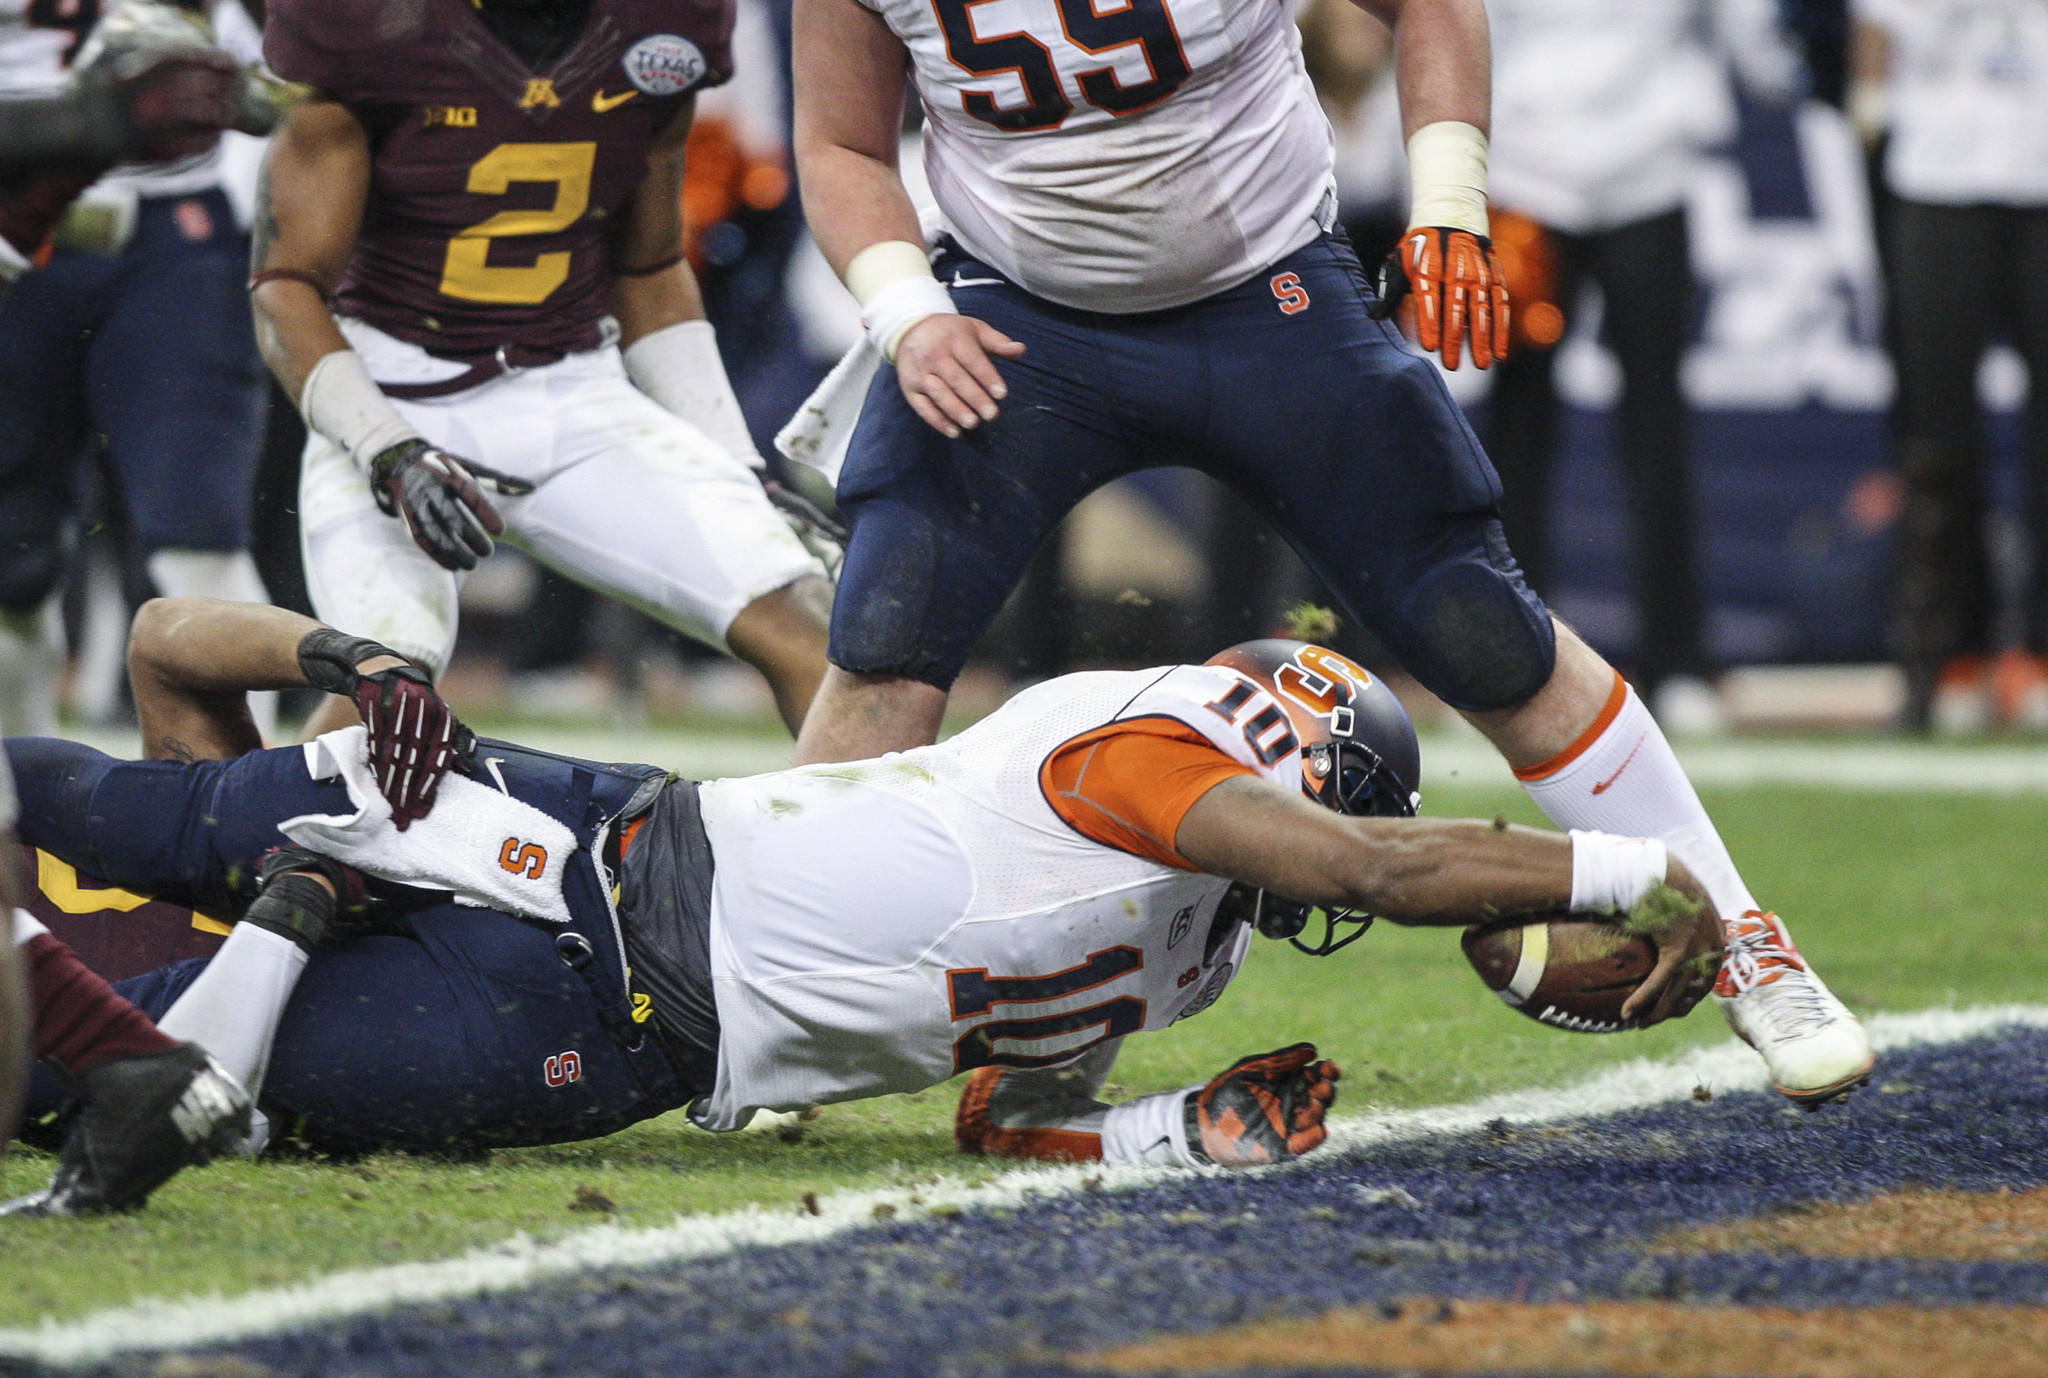 Syracuse quarterback Terrel Hunt dives for a touchdown during the third quarter of the Texas Bowl against Minnesota at Reliant Stadium.